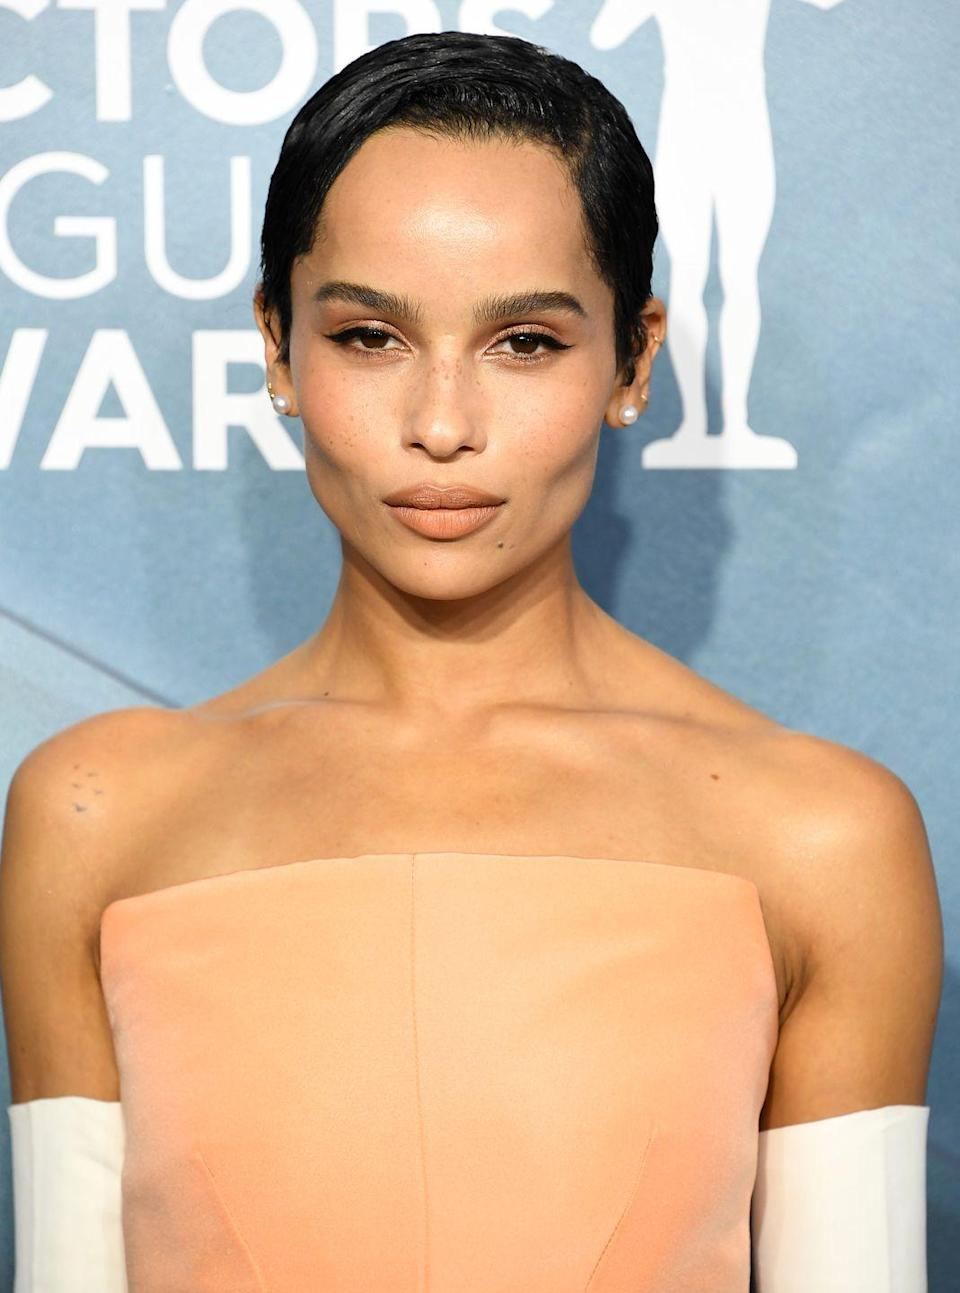 <p>The Audrey Hepburn-esque super short crop of our dreams, we love every 'do Zoe Kravitz rocks, but this one is at the top of our 'take to hairdresser' inspo list.</p>